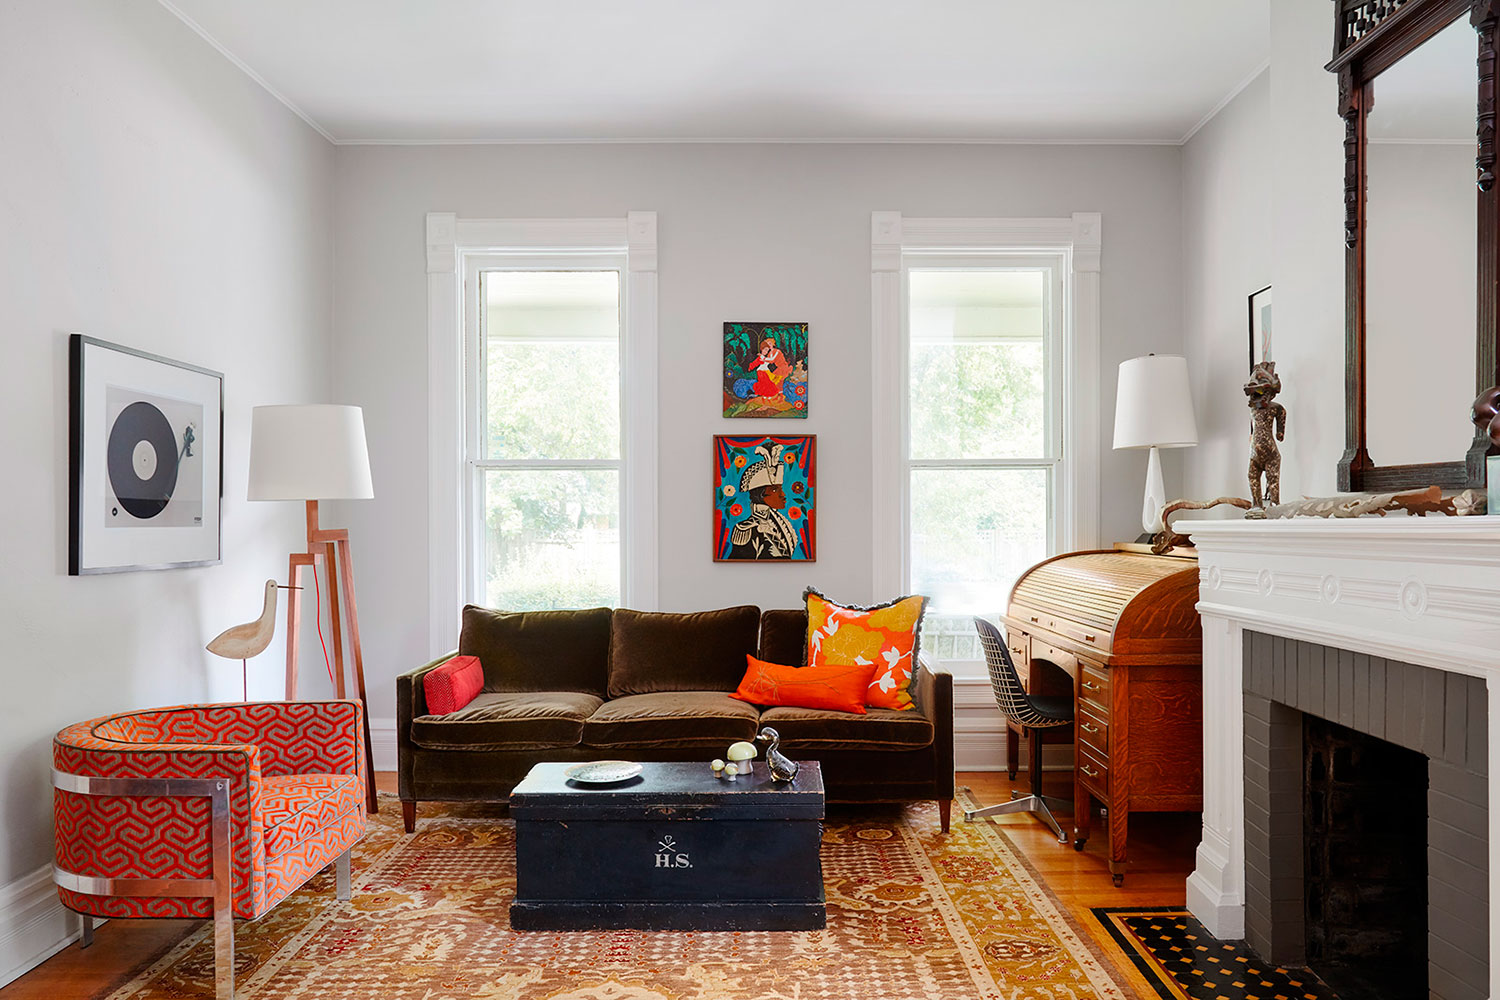 1960s Furnishings in an Historic 1880s Home | Rue